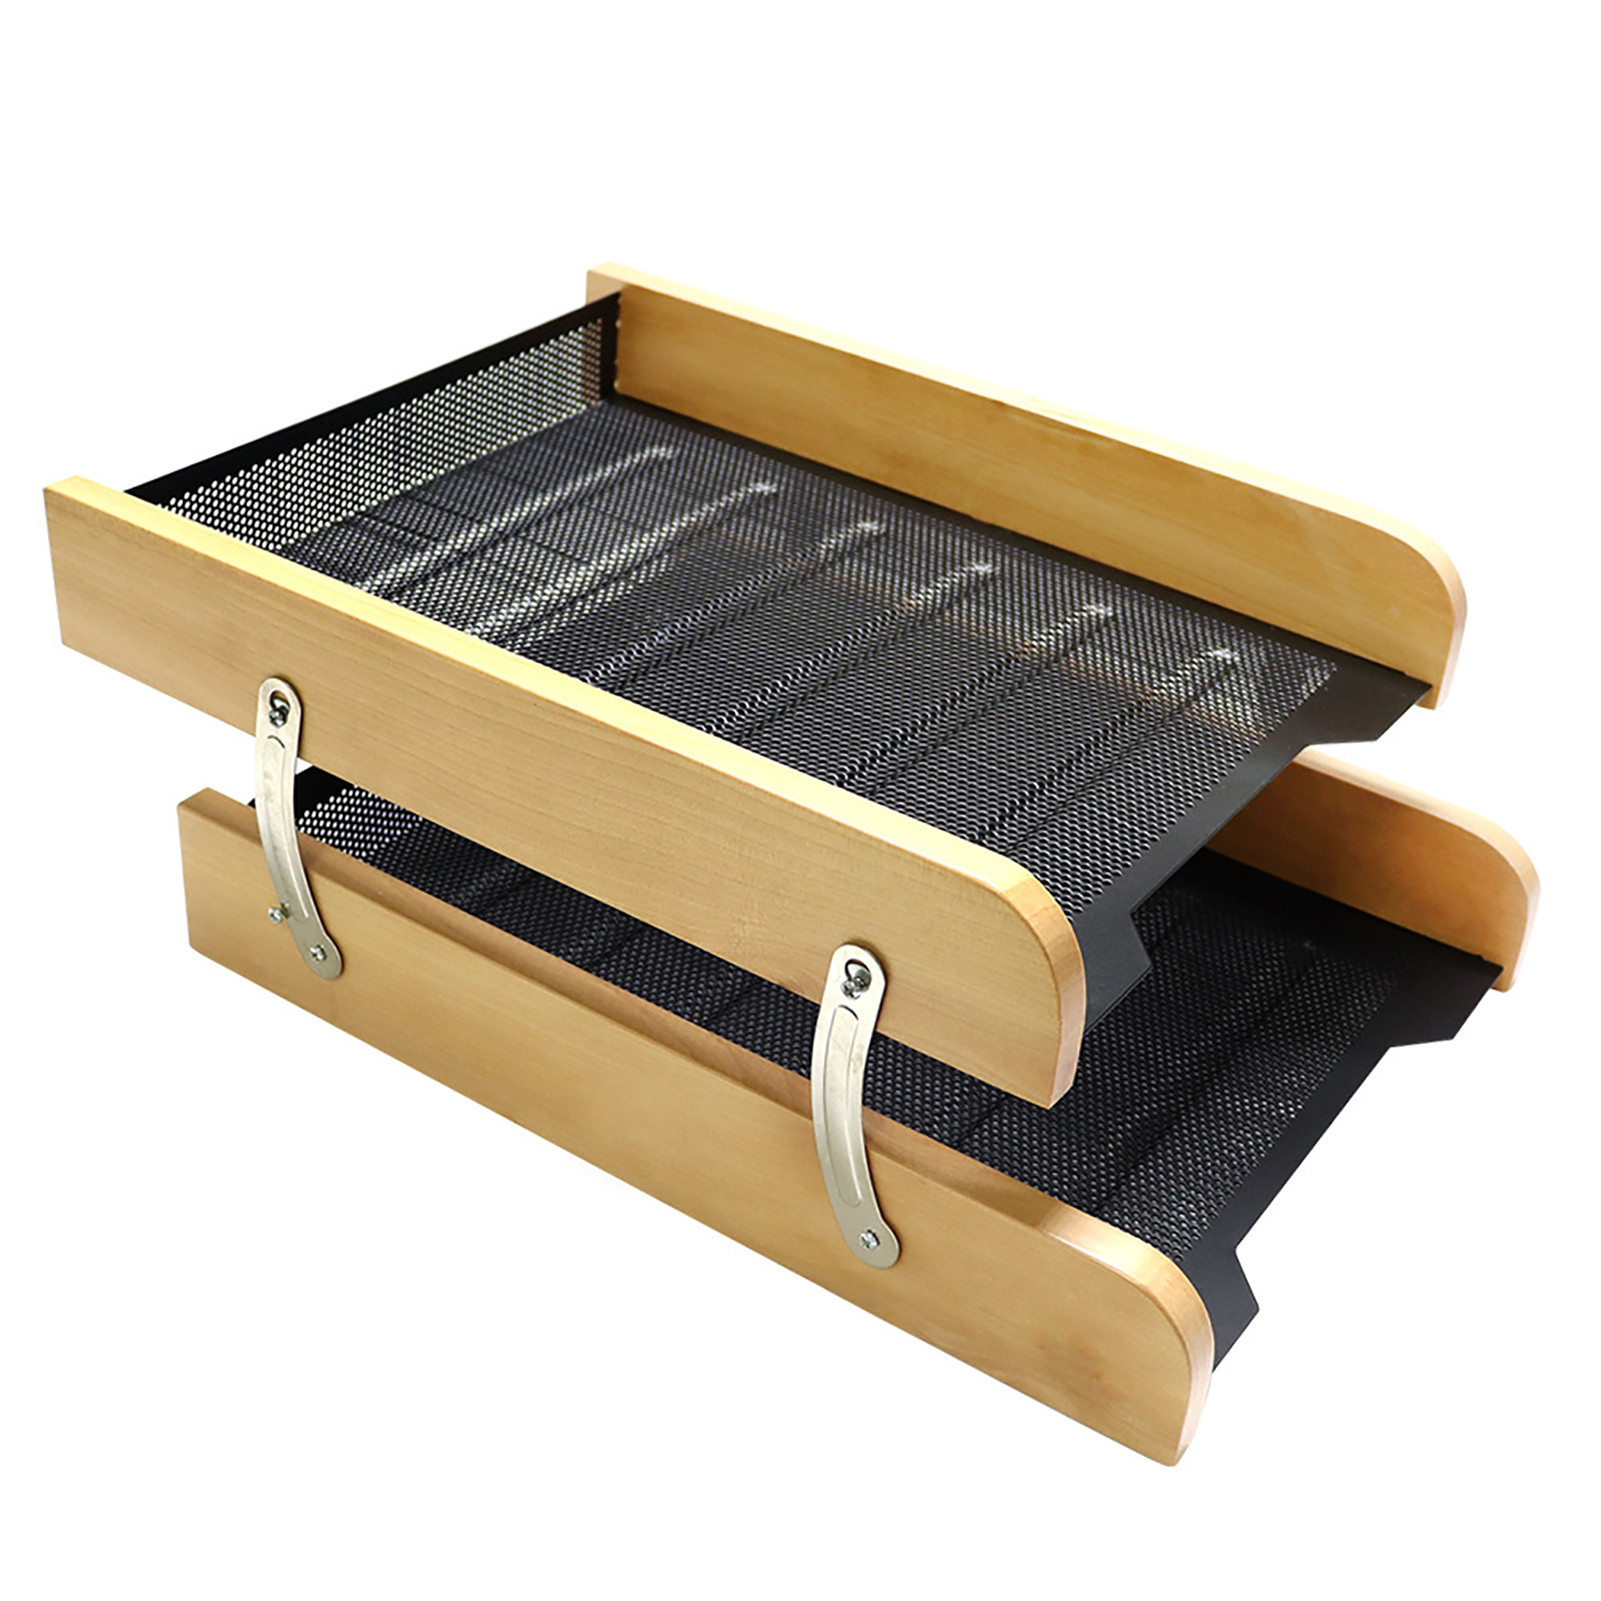 Wood Double Layer Wood File Letter Tray Document Shelf Storage Drawers Desk Organizer File A4 Paper Holder Magazine Rack